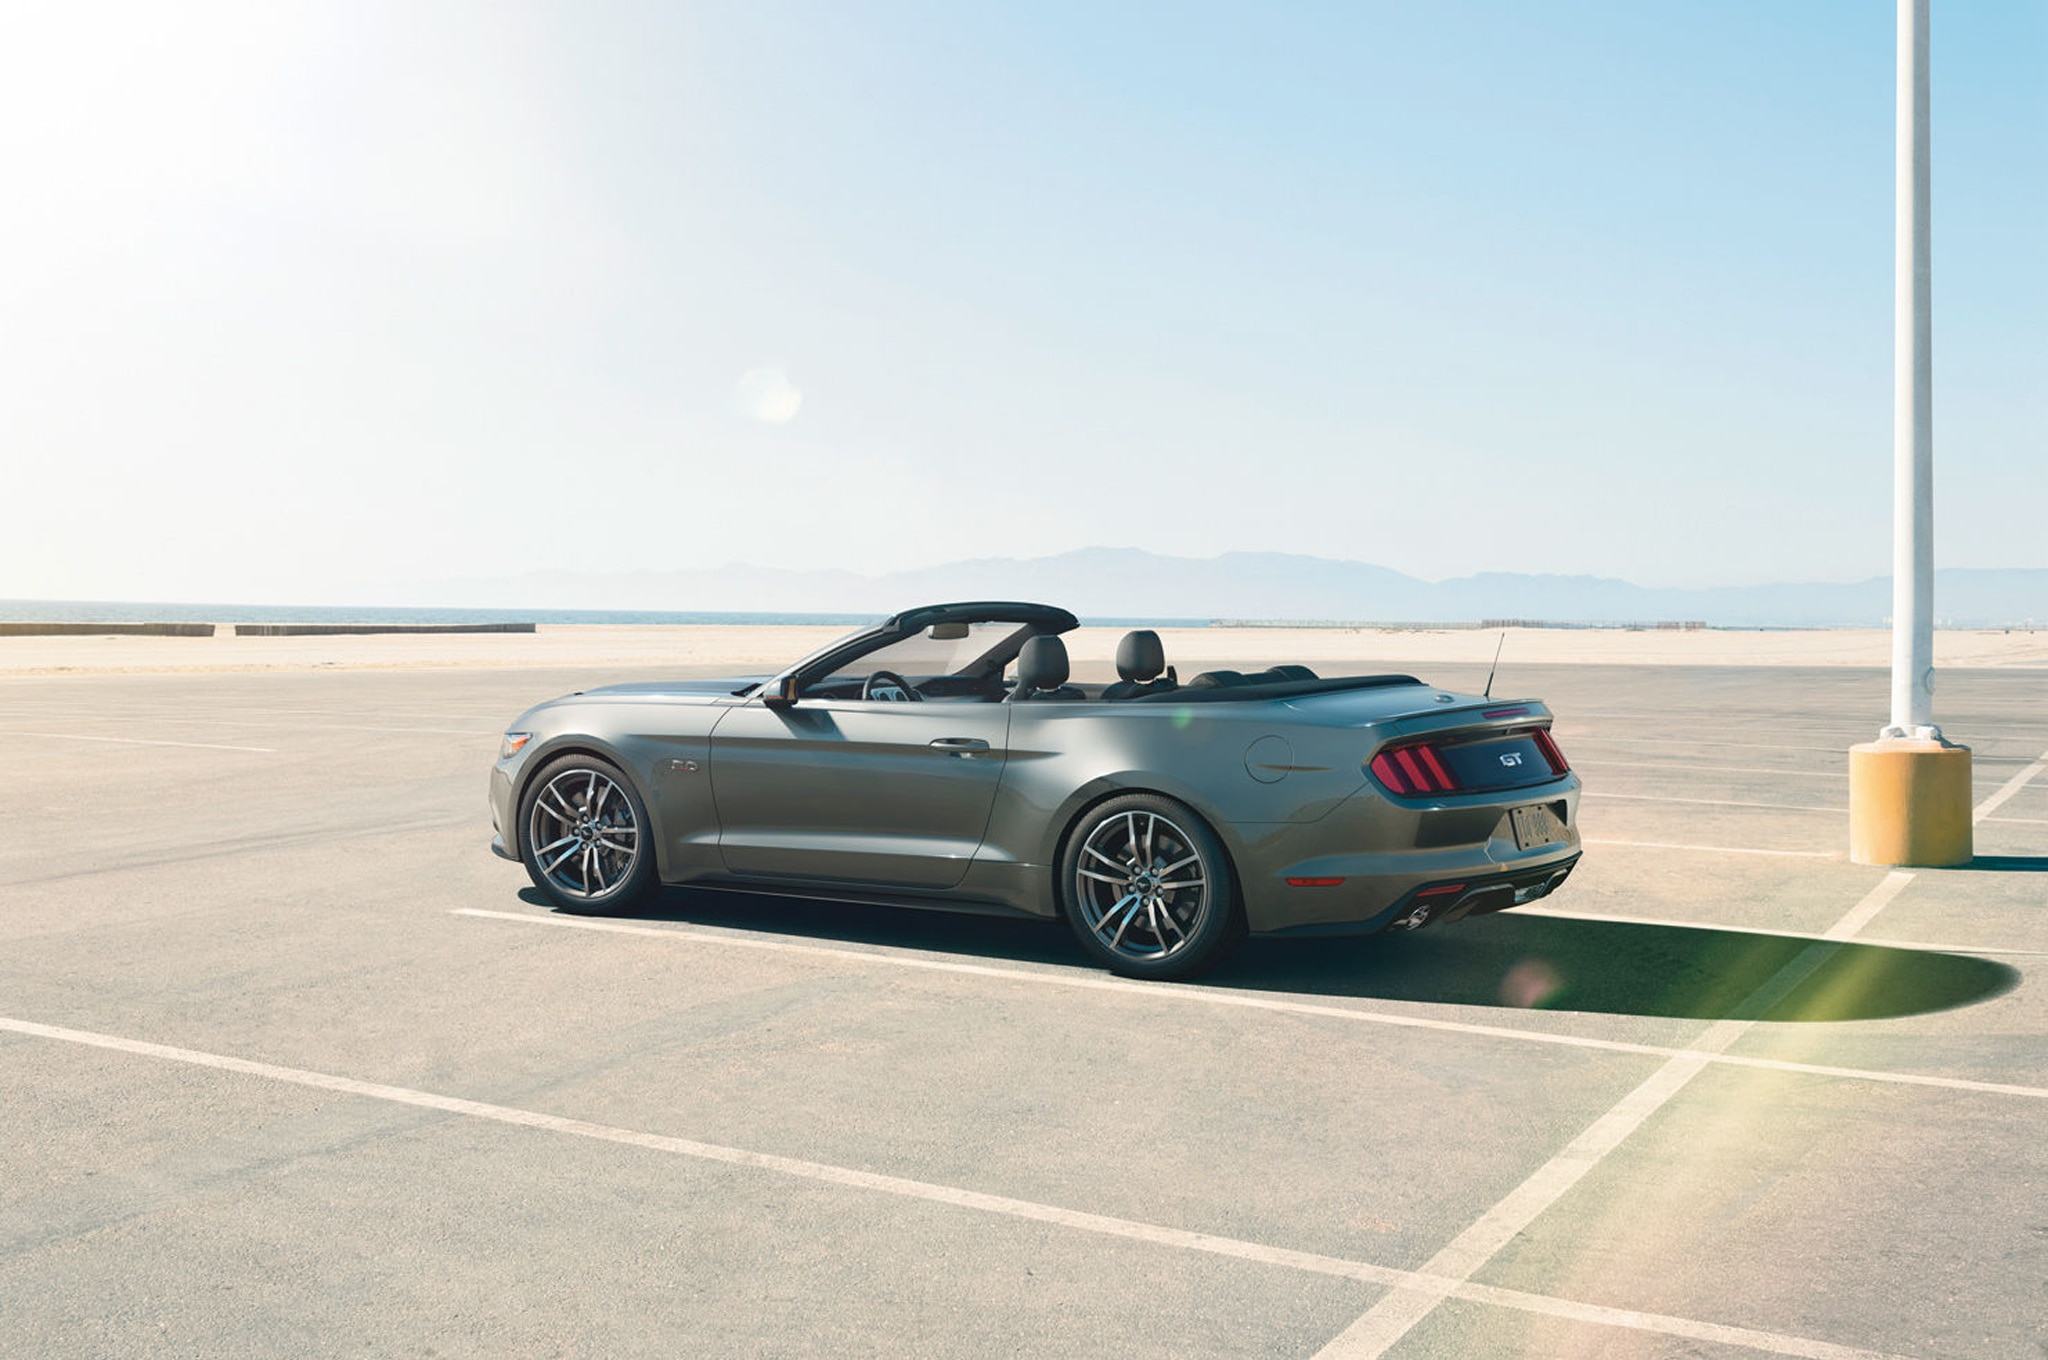 2015 Ford Mustang Convertible Rear Three Quarter1